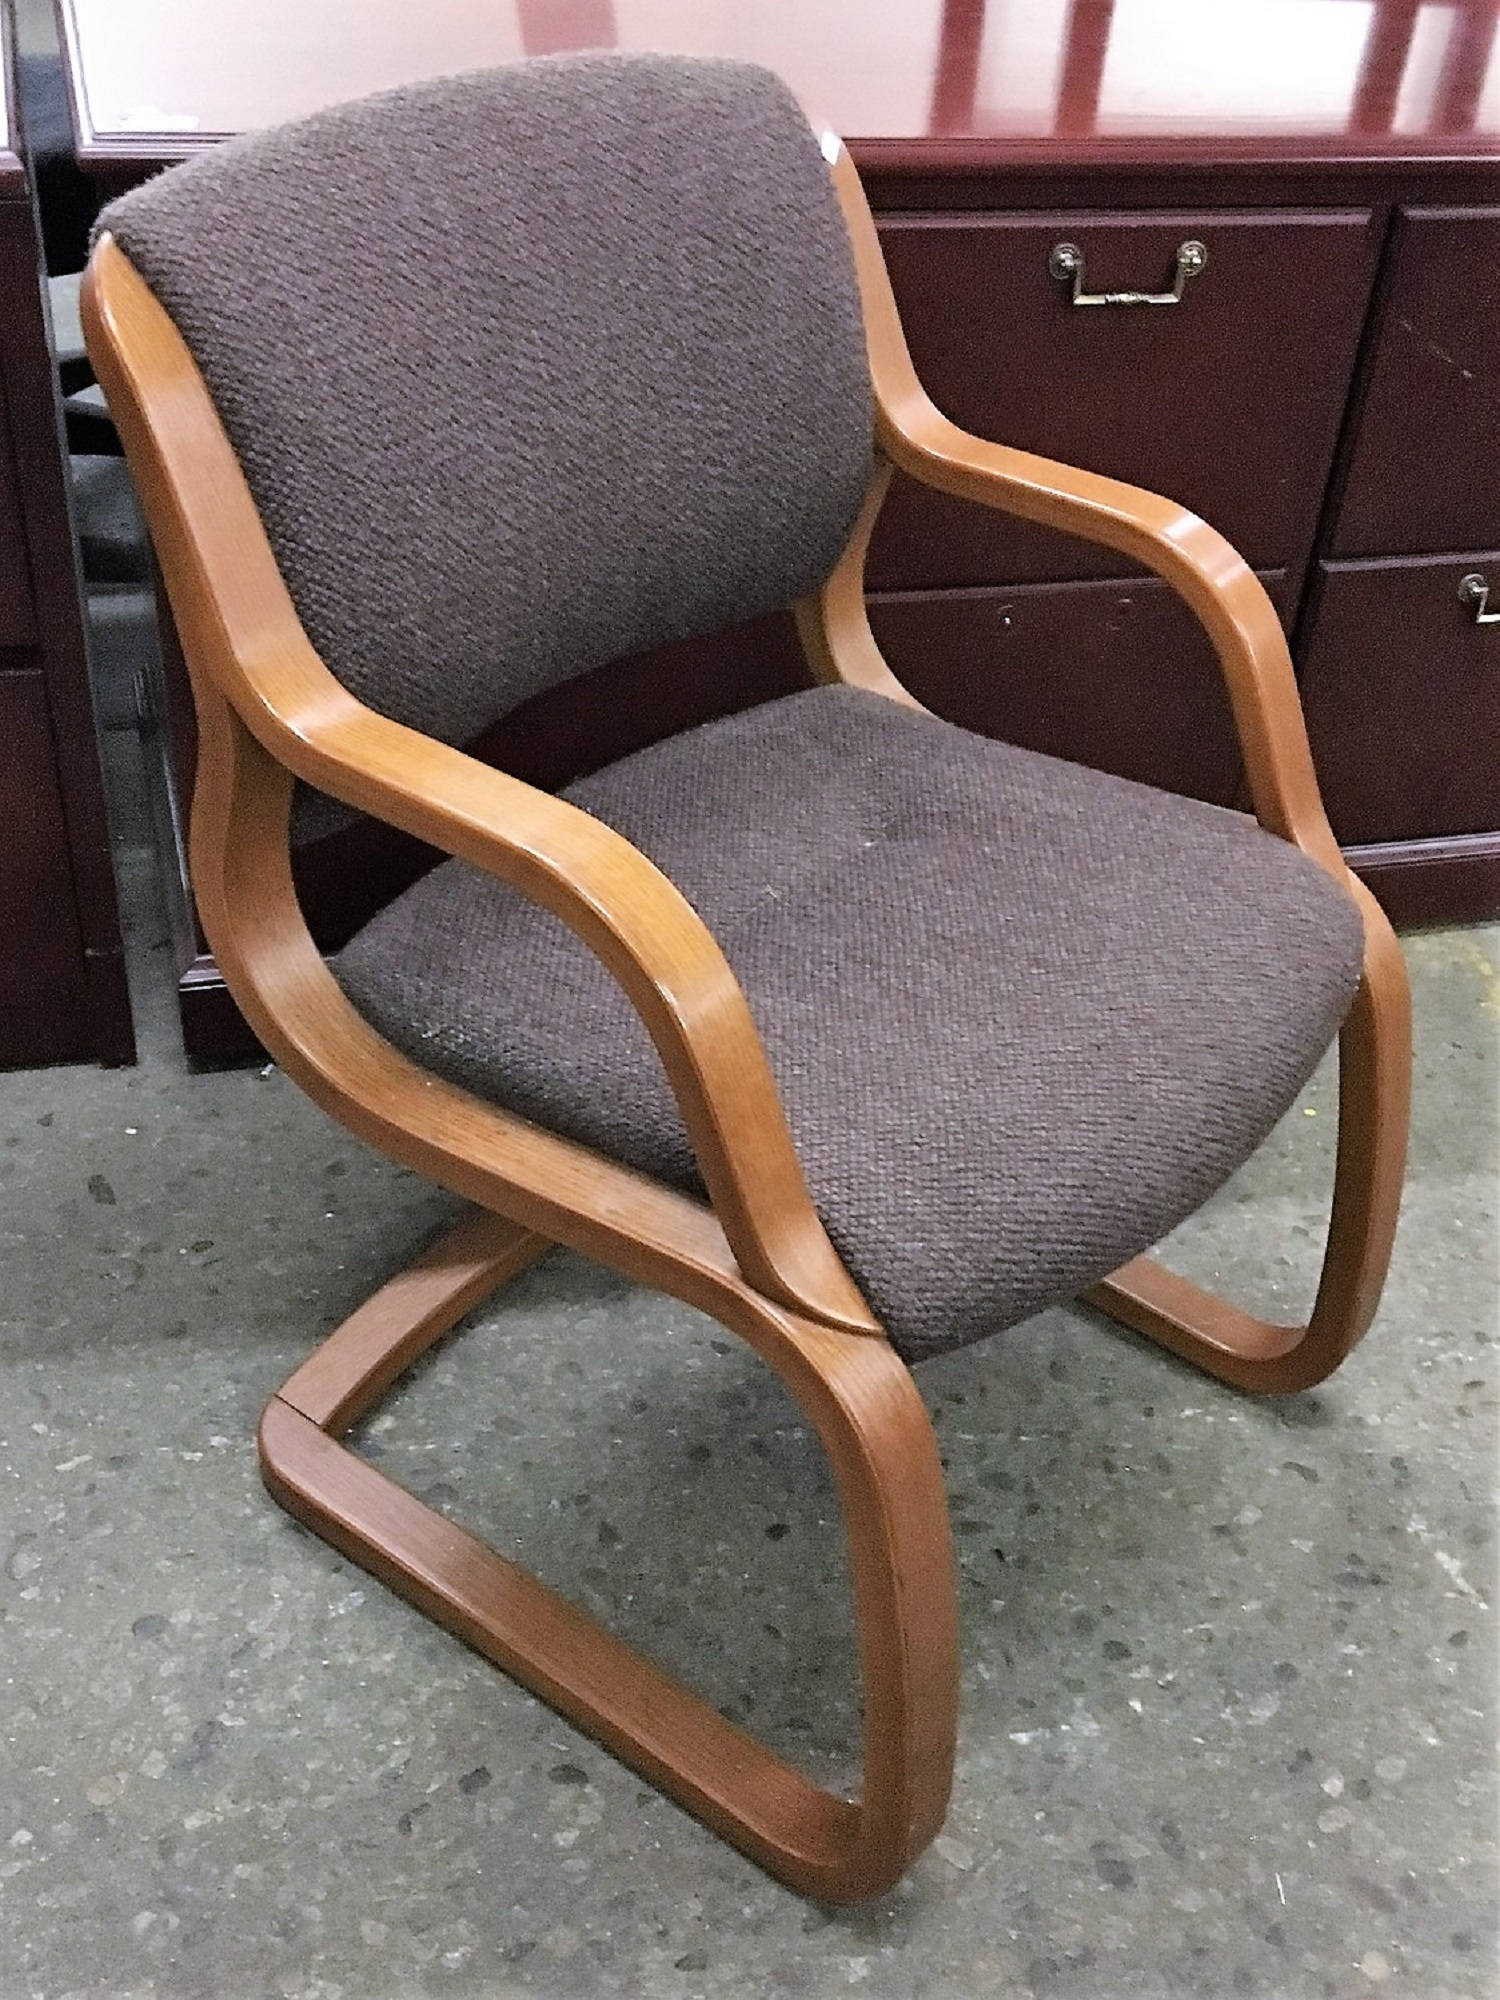 brown office guest chairs lowes adirondack chair plans steelcase arrondi series fabric surplus home used and stackable